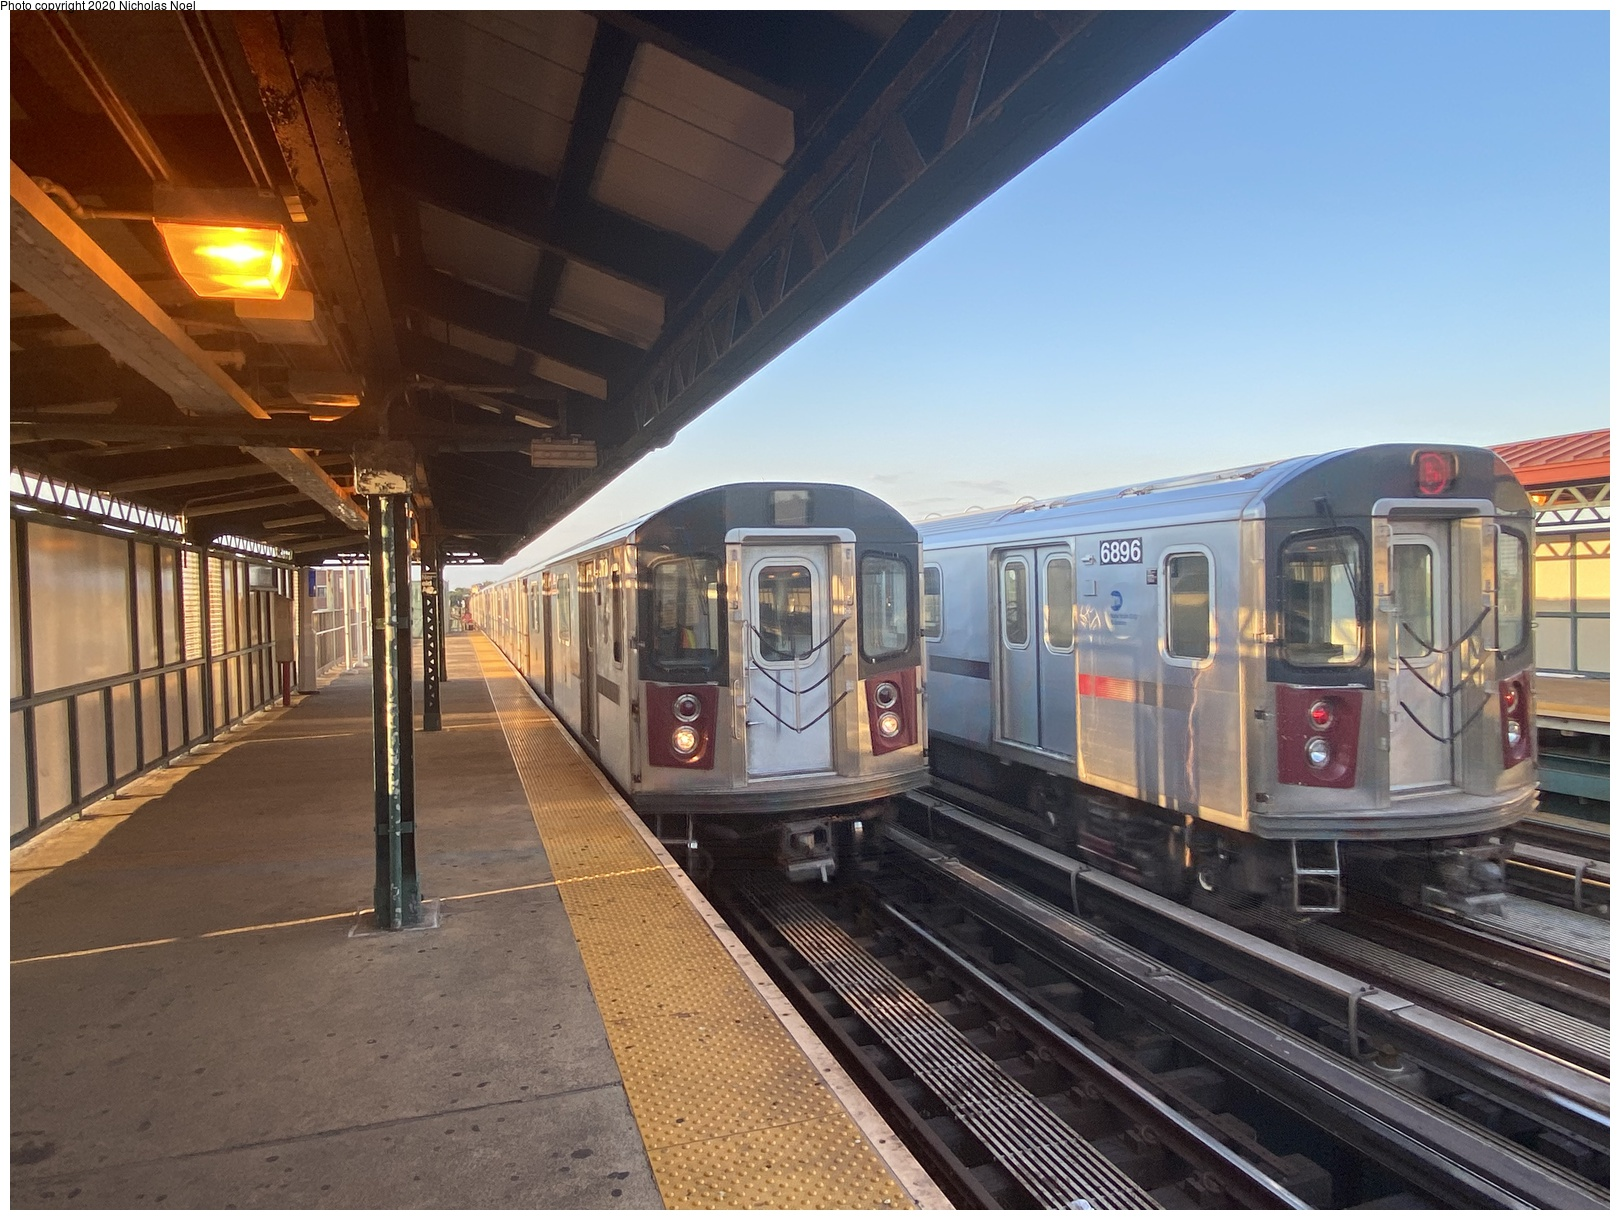 (357k, 1044x787)<br><b>Country:</b> United States<br><b>City:</b> New York<br><b>System:</b> New York City Transit<br><b>Line:</b> BMT Myrtle Avenue Line<br><b>Location:</b> Metropolitan Avenue <br><b>Car:</b> BMT Elevated Gate Car  <br><b>Photo by:</b> Joel Shanus<br><b>Viewed (this week/total):</b> 0 / 1928